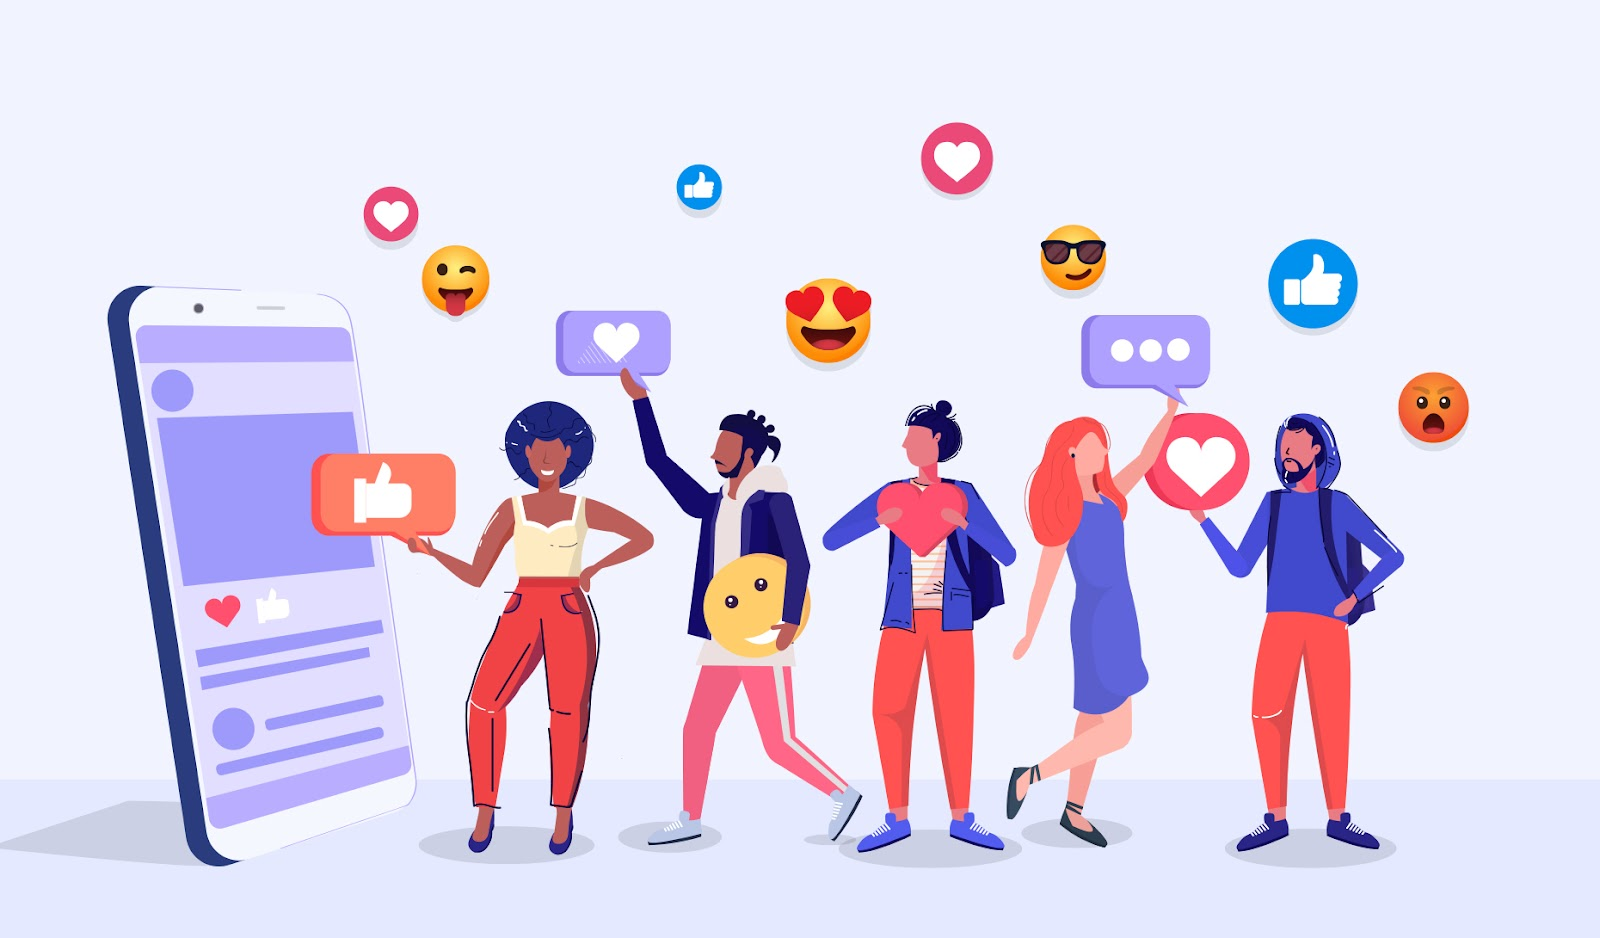 Illustration showing follower characters reacting to social media content with likes and emojis